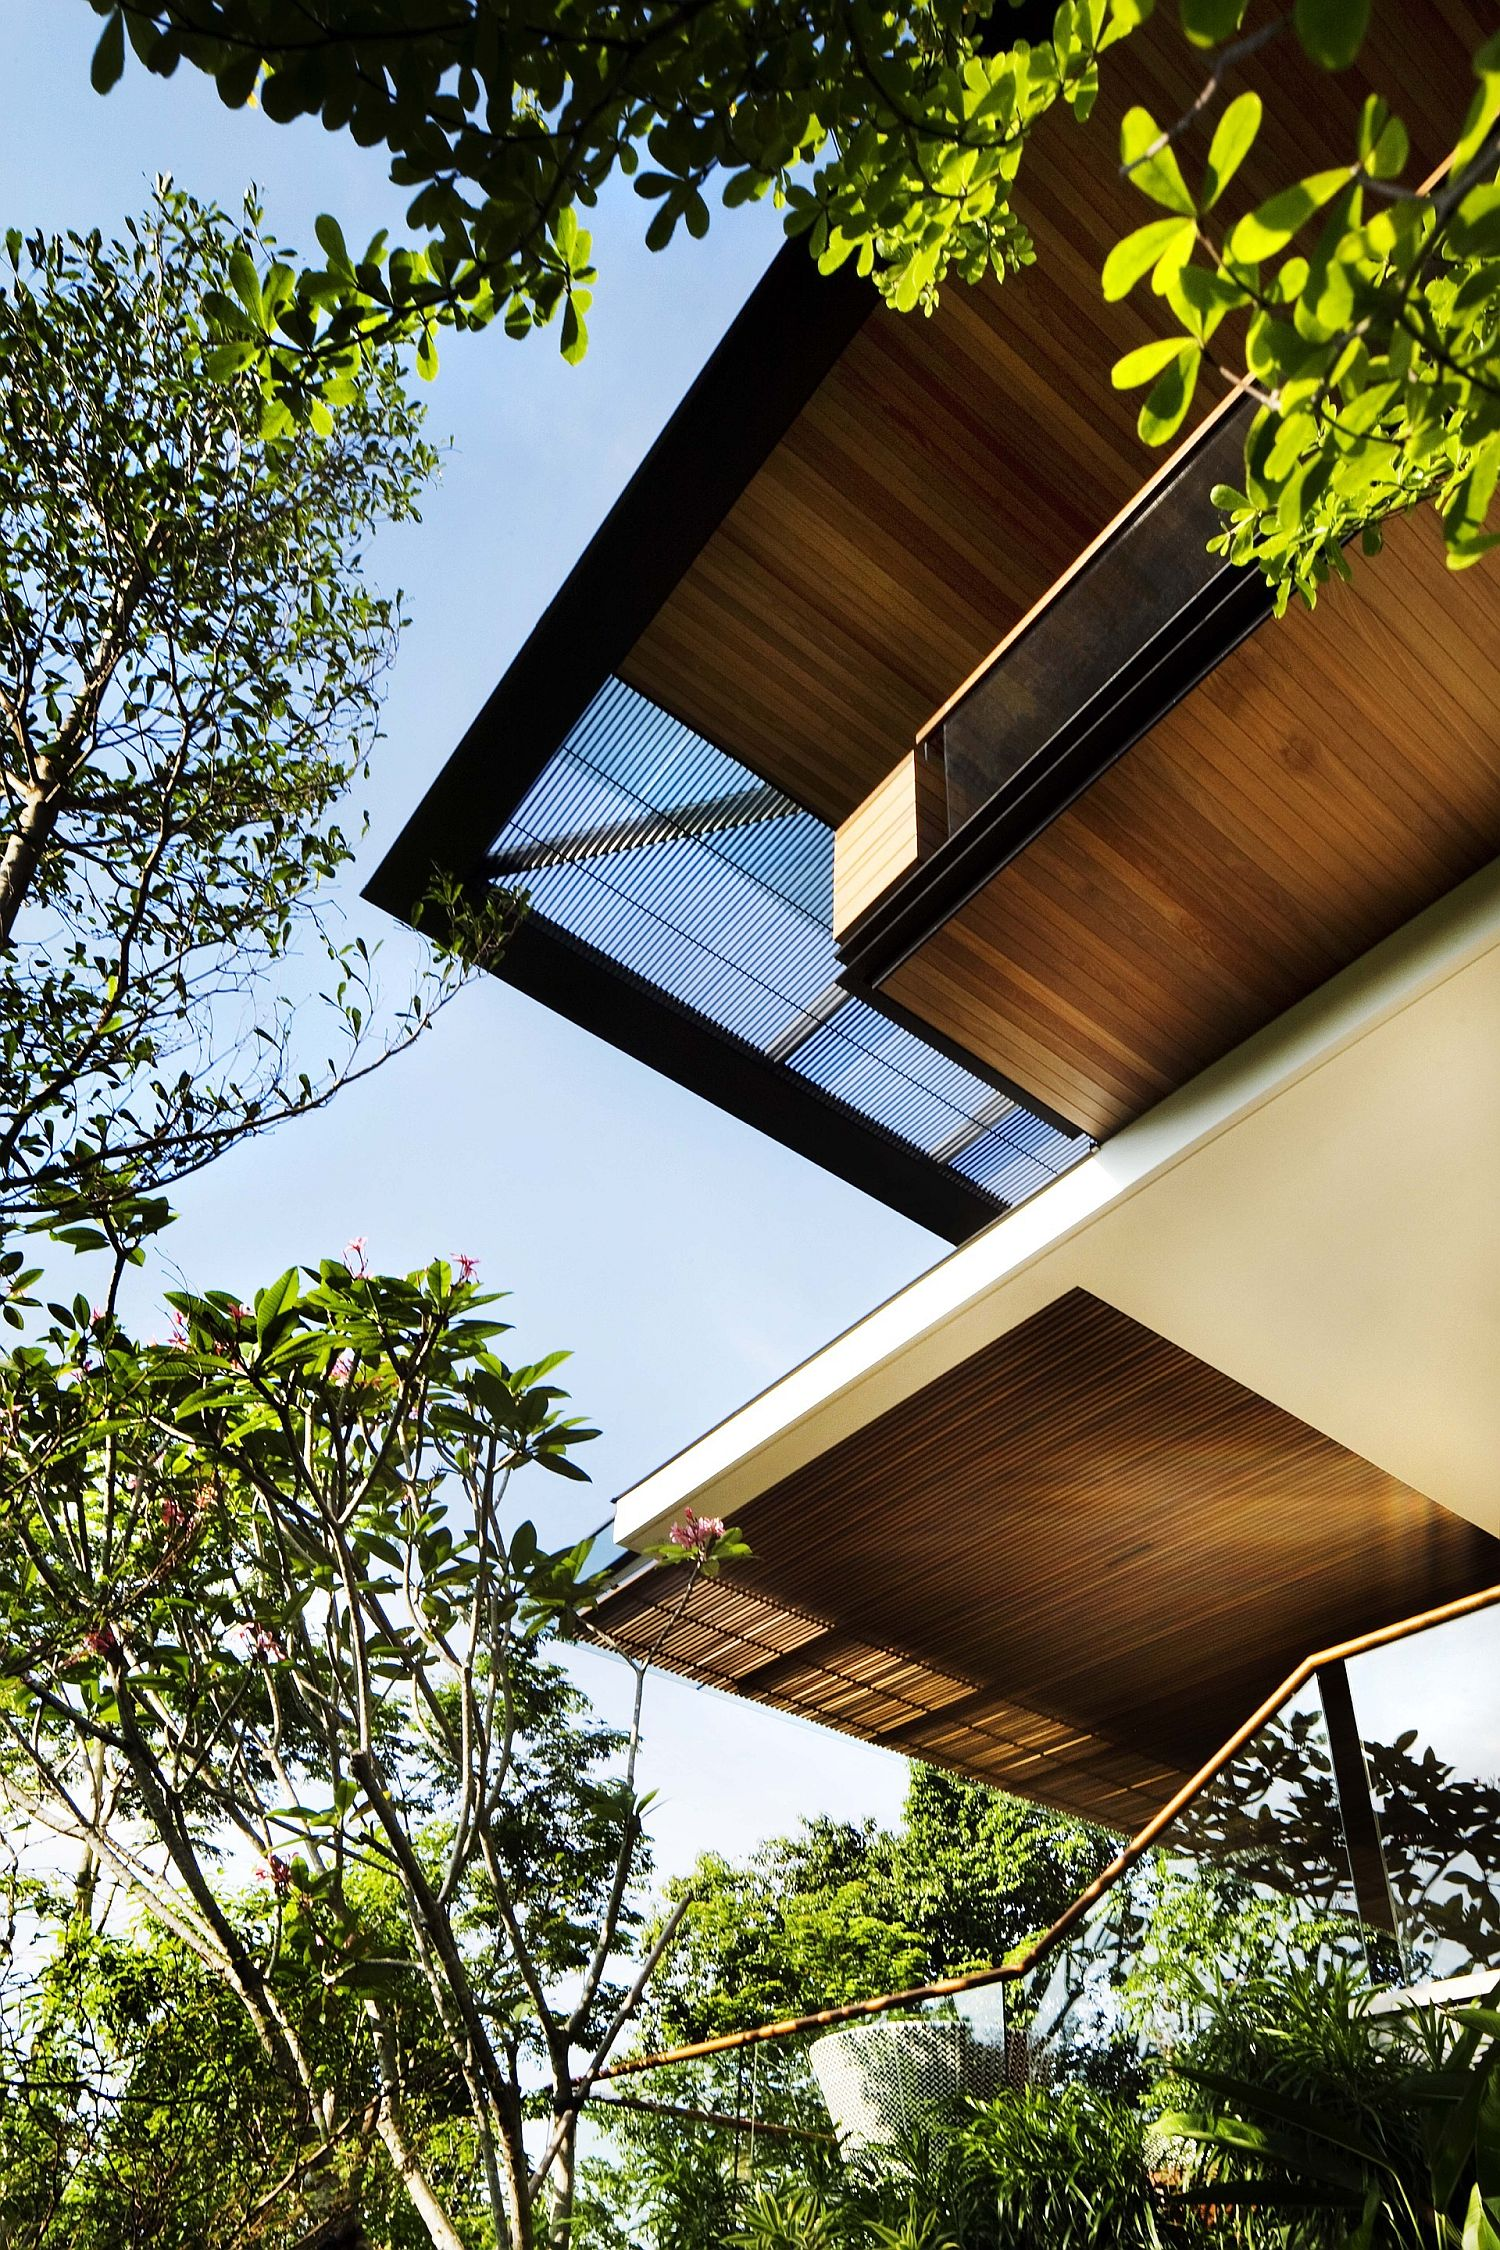 Multi-level stunning home in Singapore with ample greenery all around